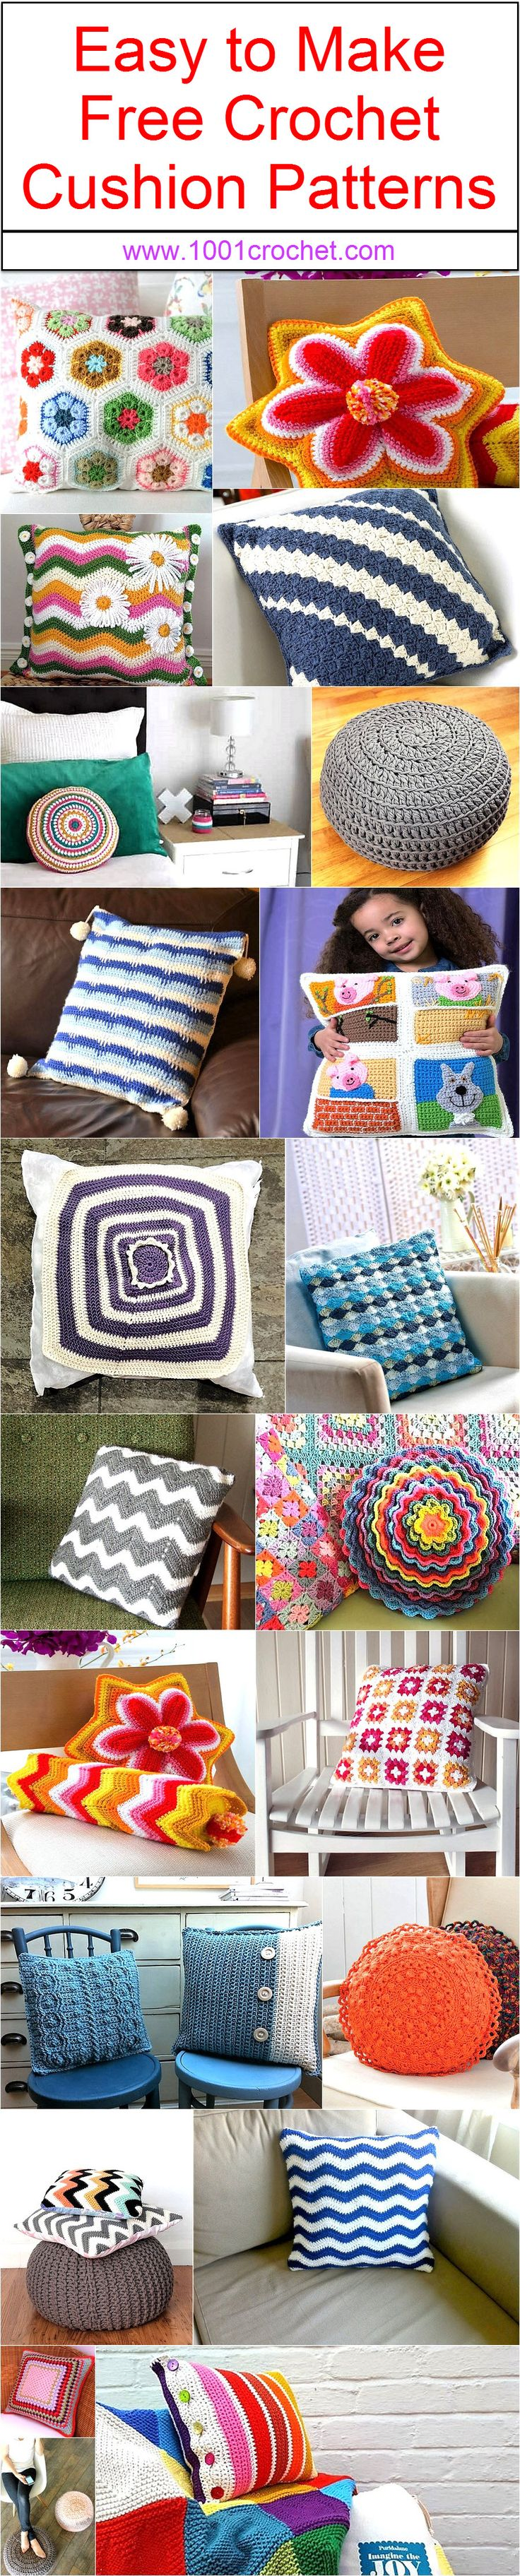 Best 25 crochet cushion pattern ideas on pinterest crochet easy to make free crochet cushion patterns bankloansurffo Image collections